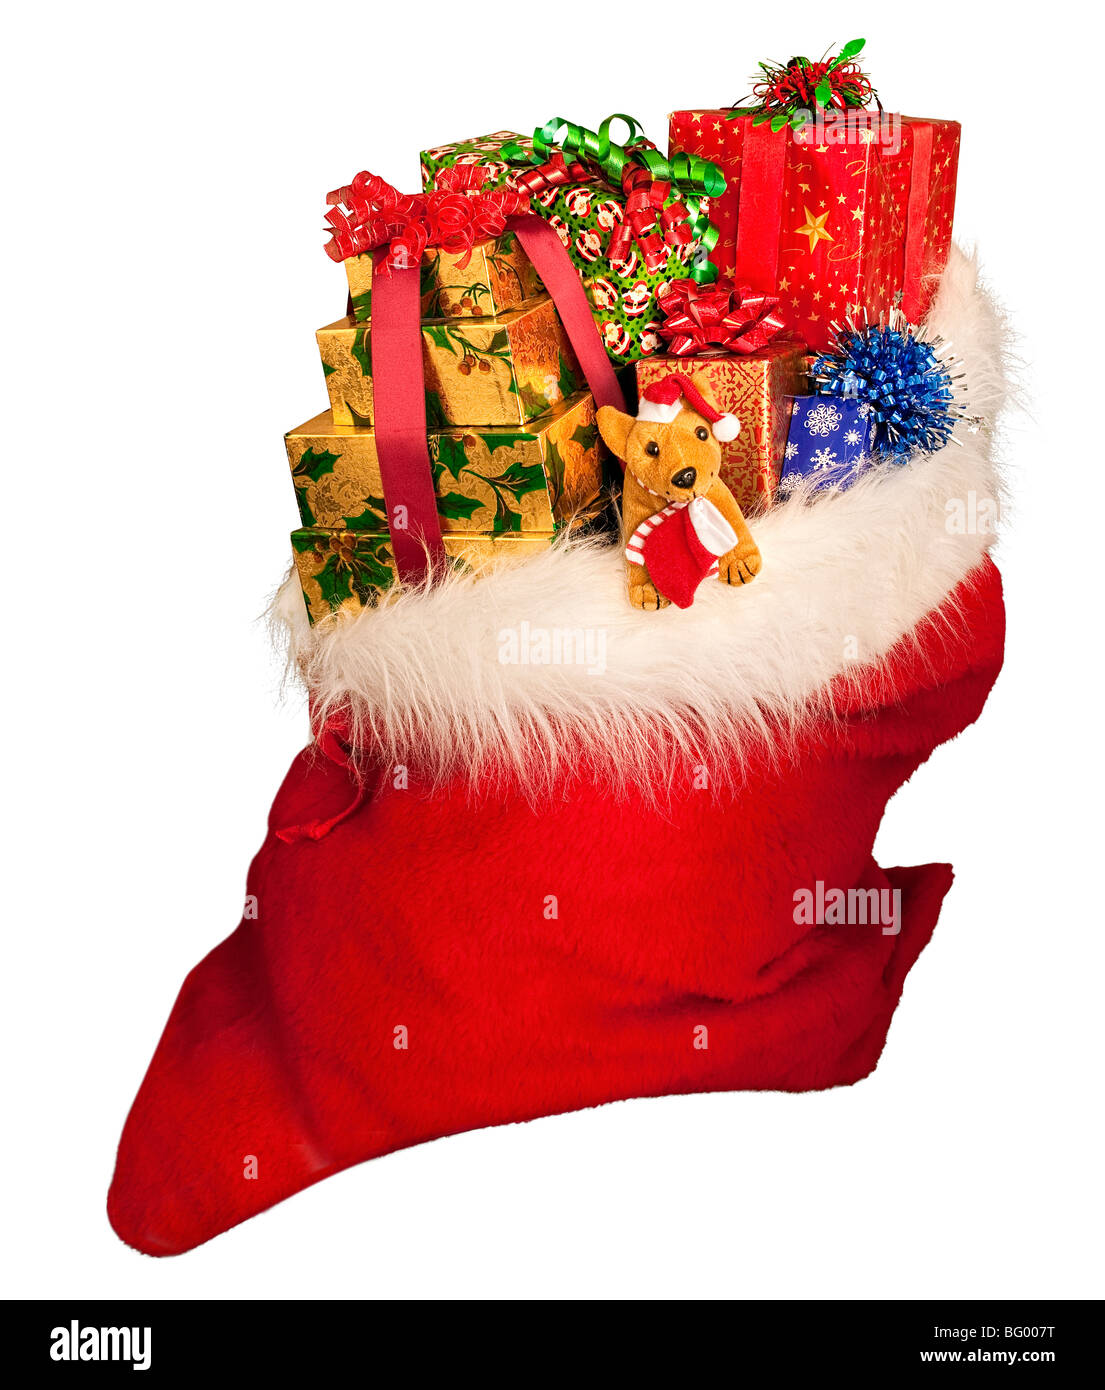 Sack With Presents Stockfotos & Sack With Presents Bilder - Alamy